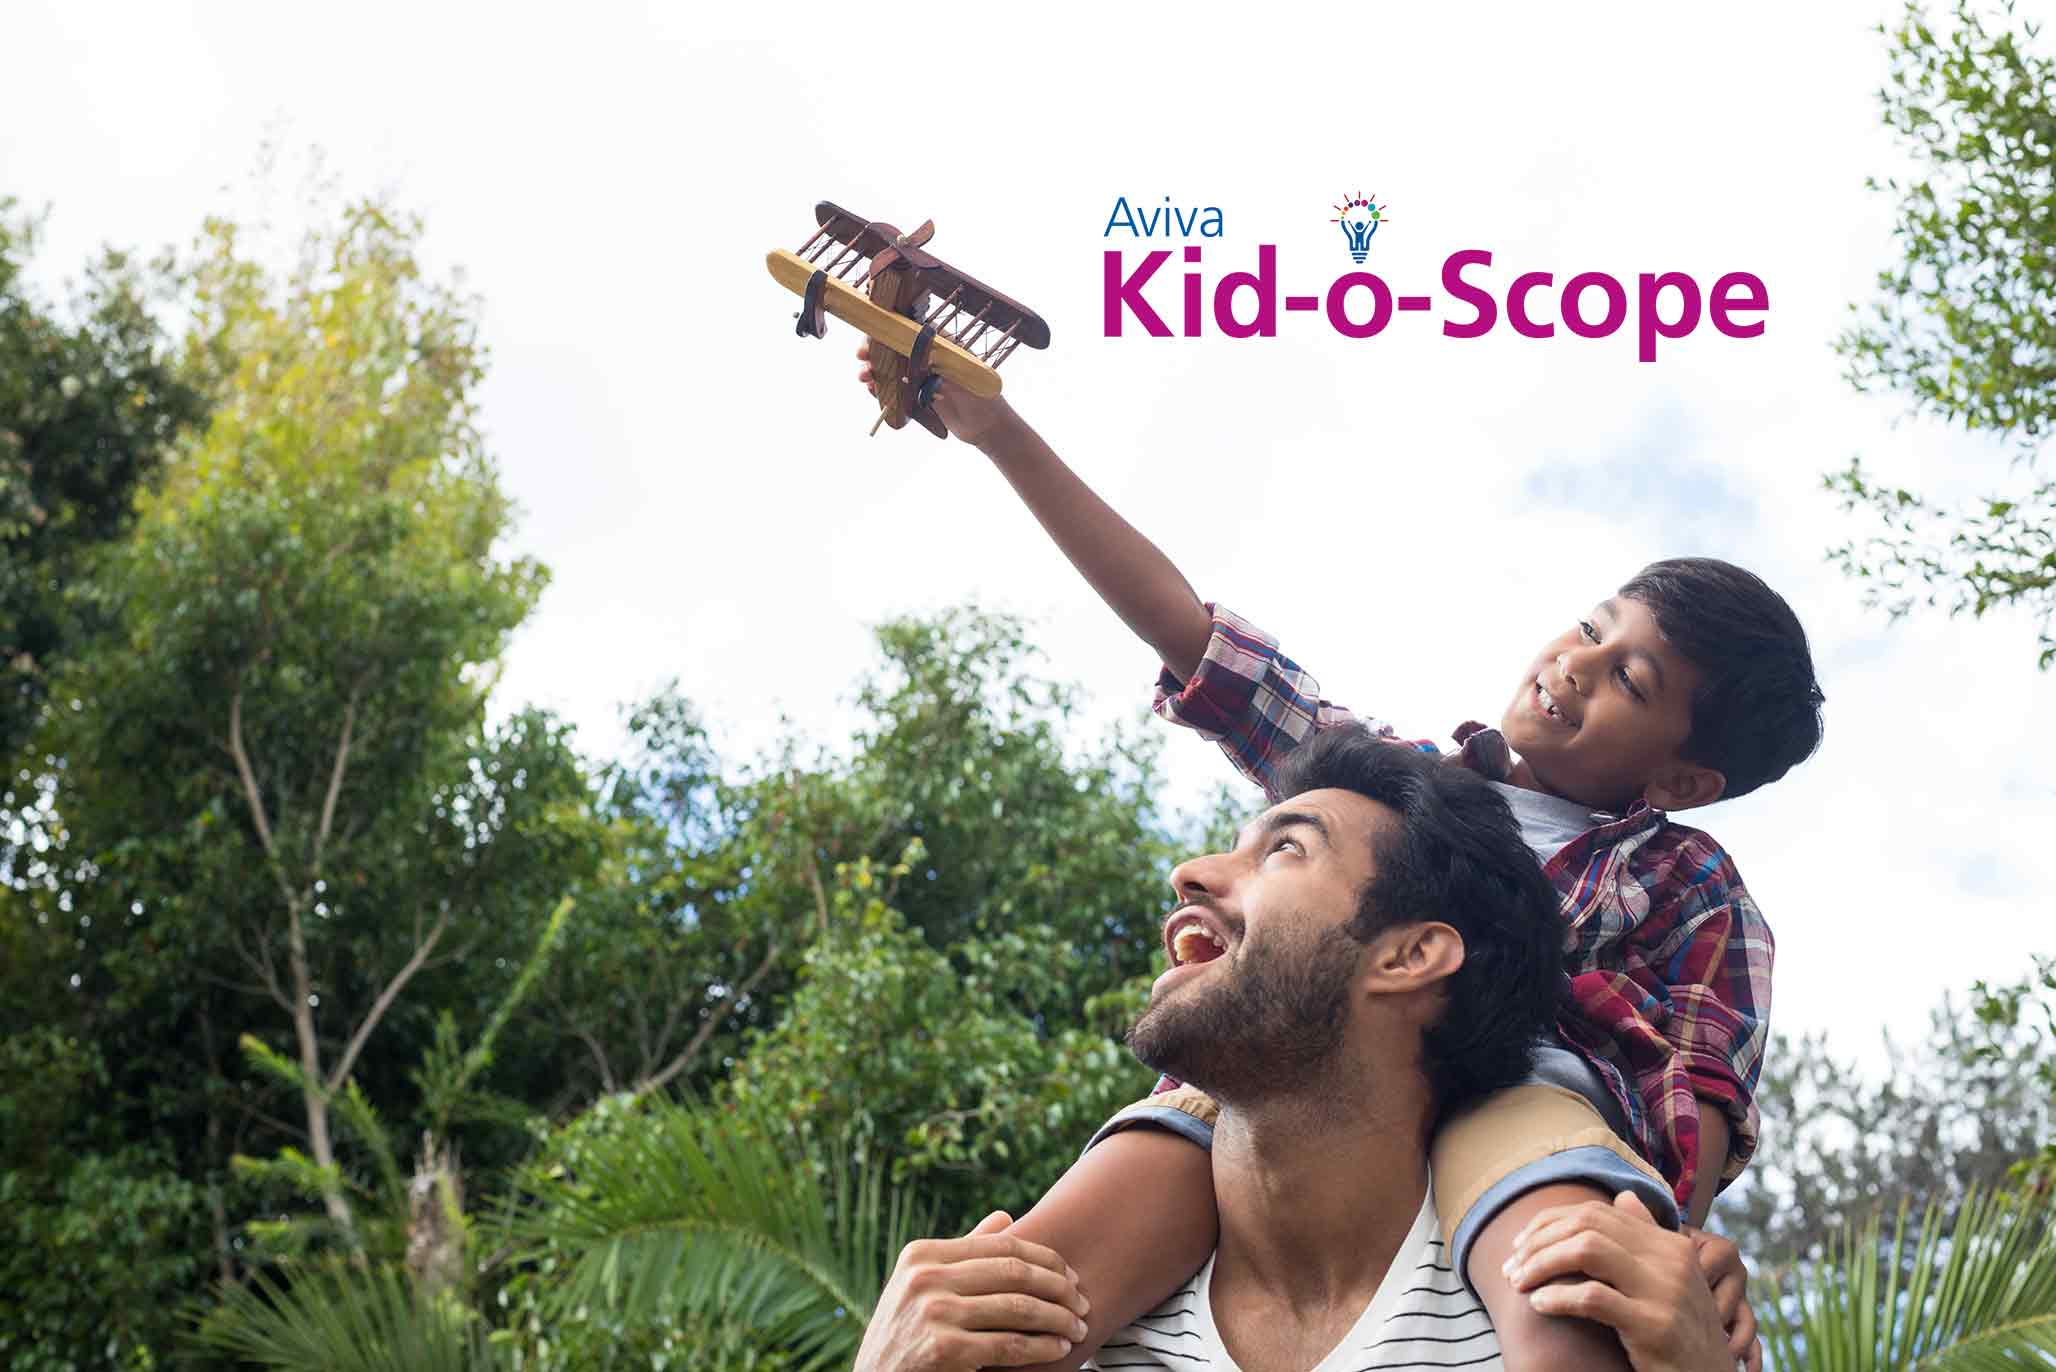 Plan Ahead for your child with Aviva Kid-o-scope! | Aviva India Blog